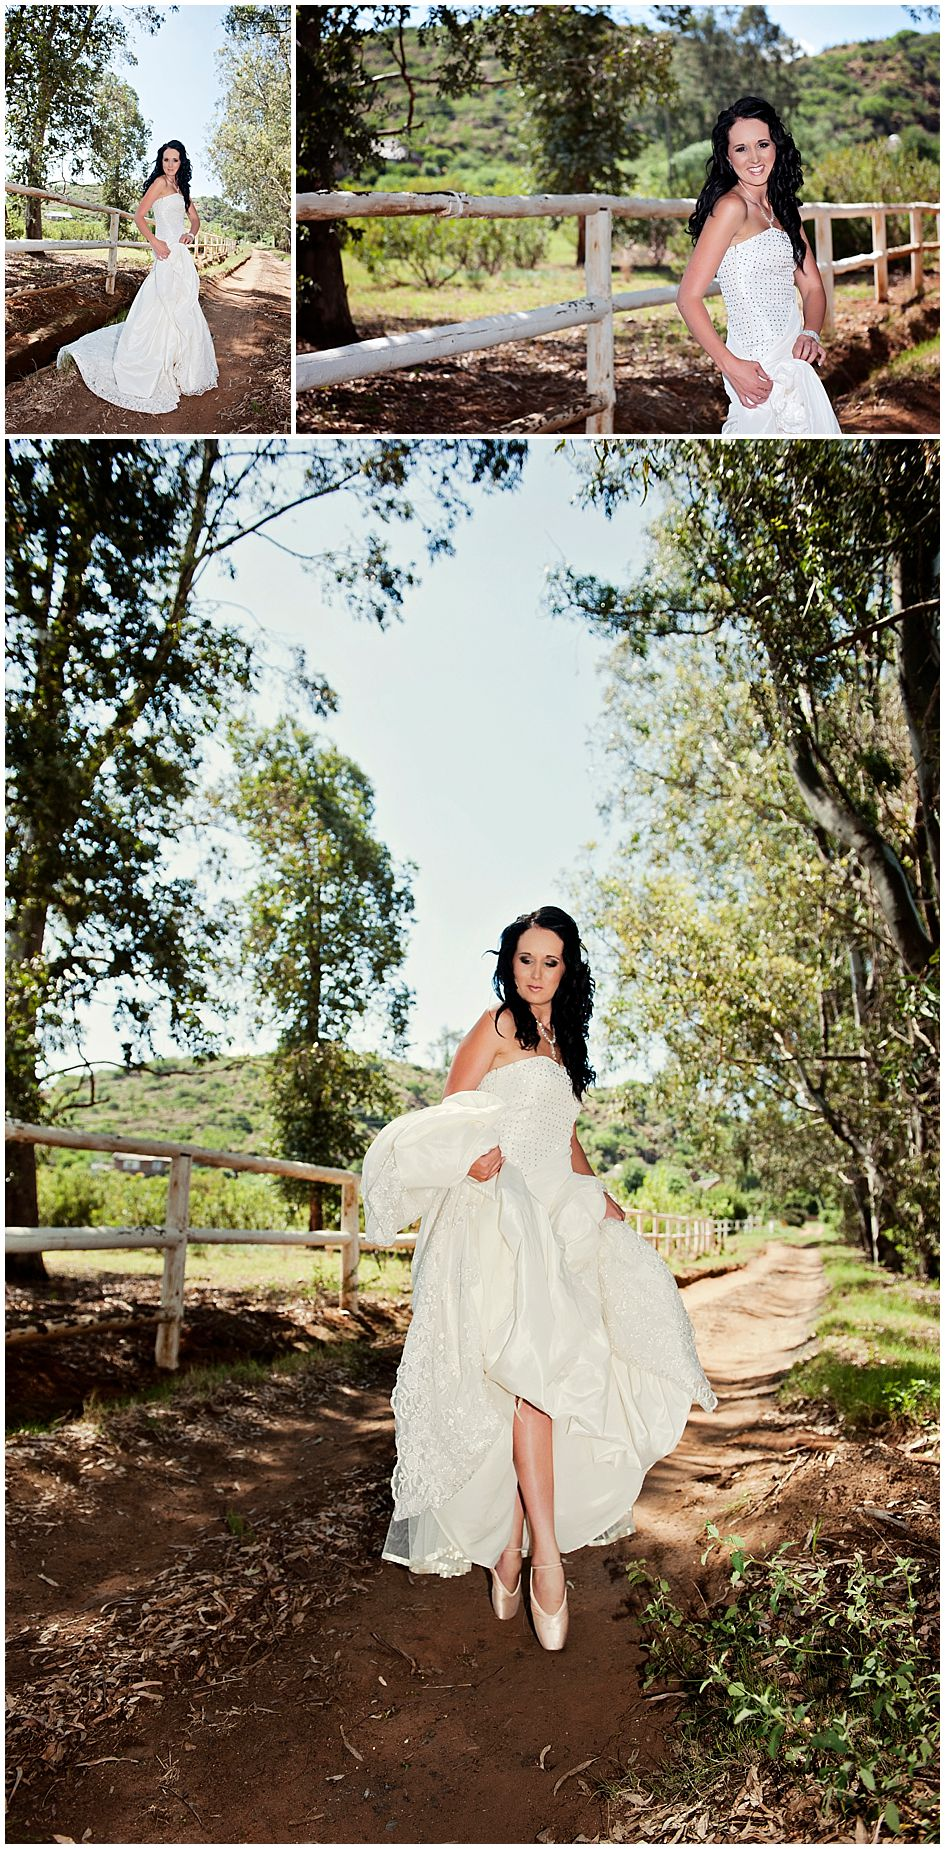 farm-bush-creative-ballet-bride-shoot.jpg